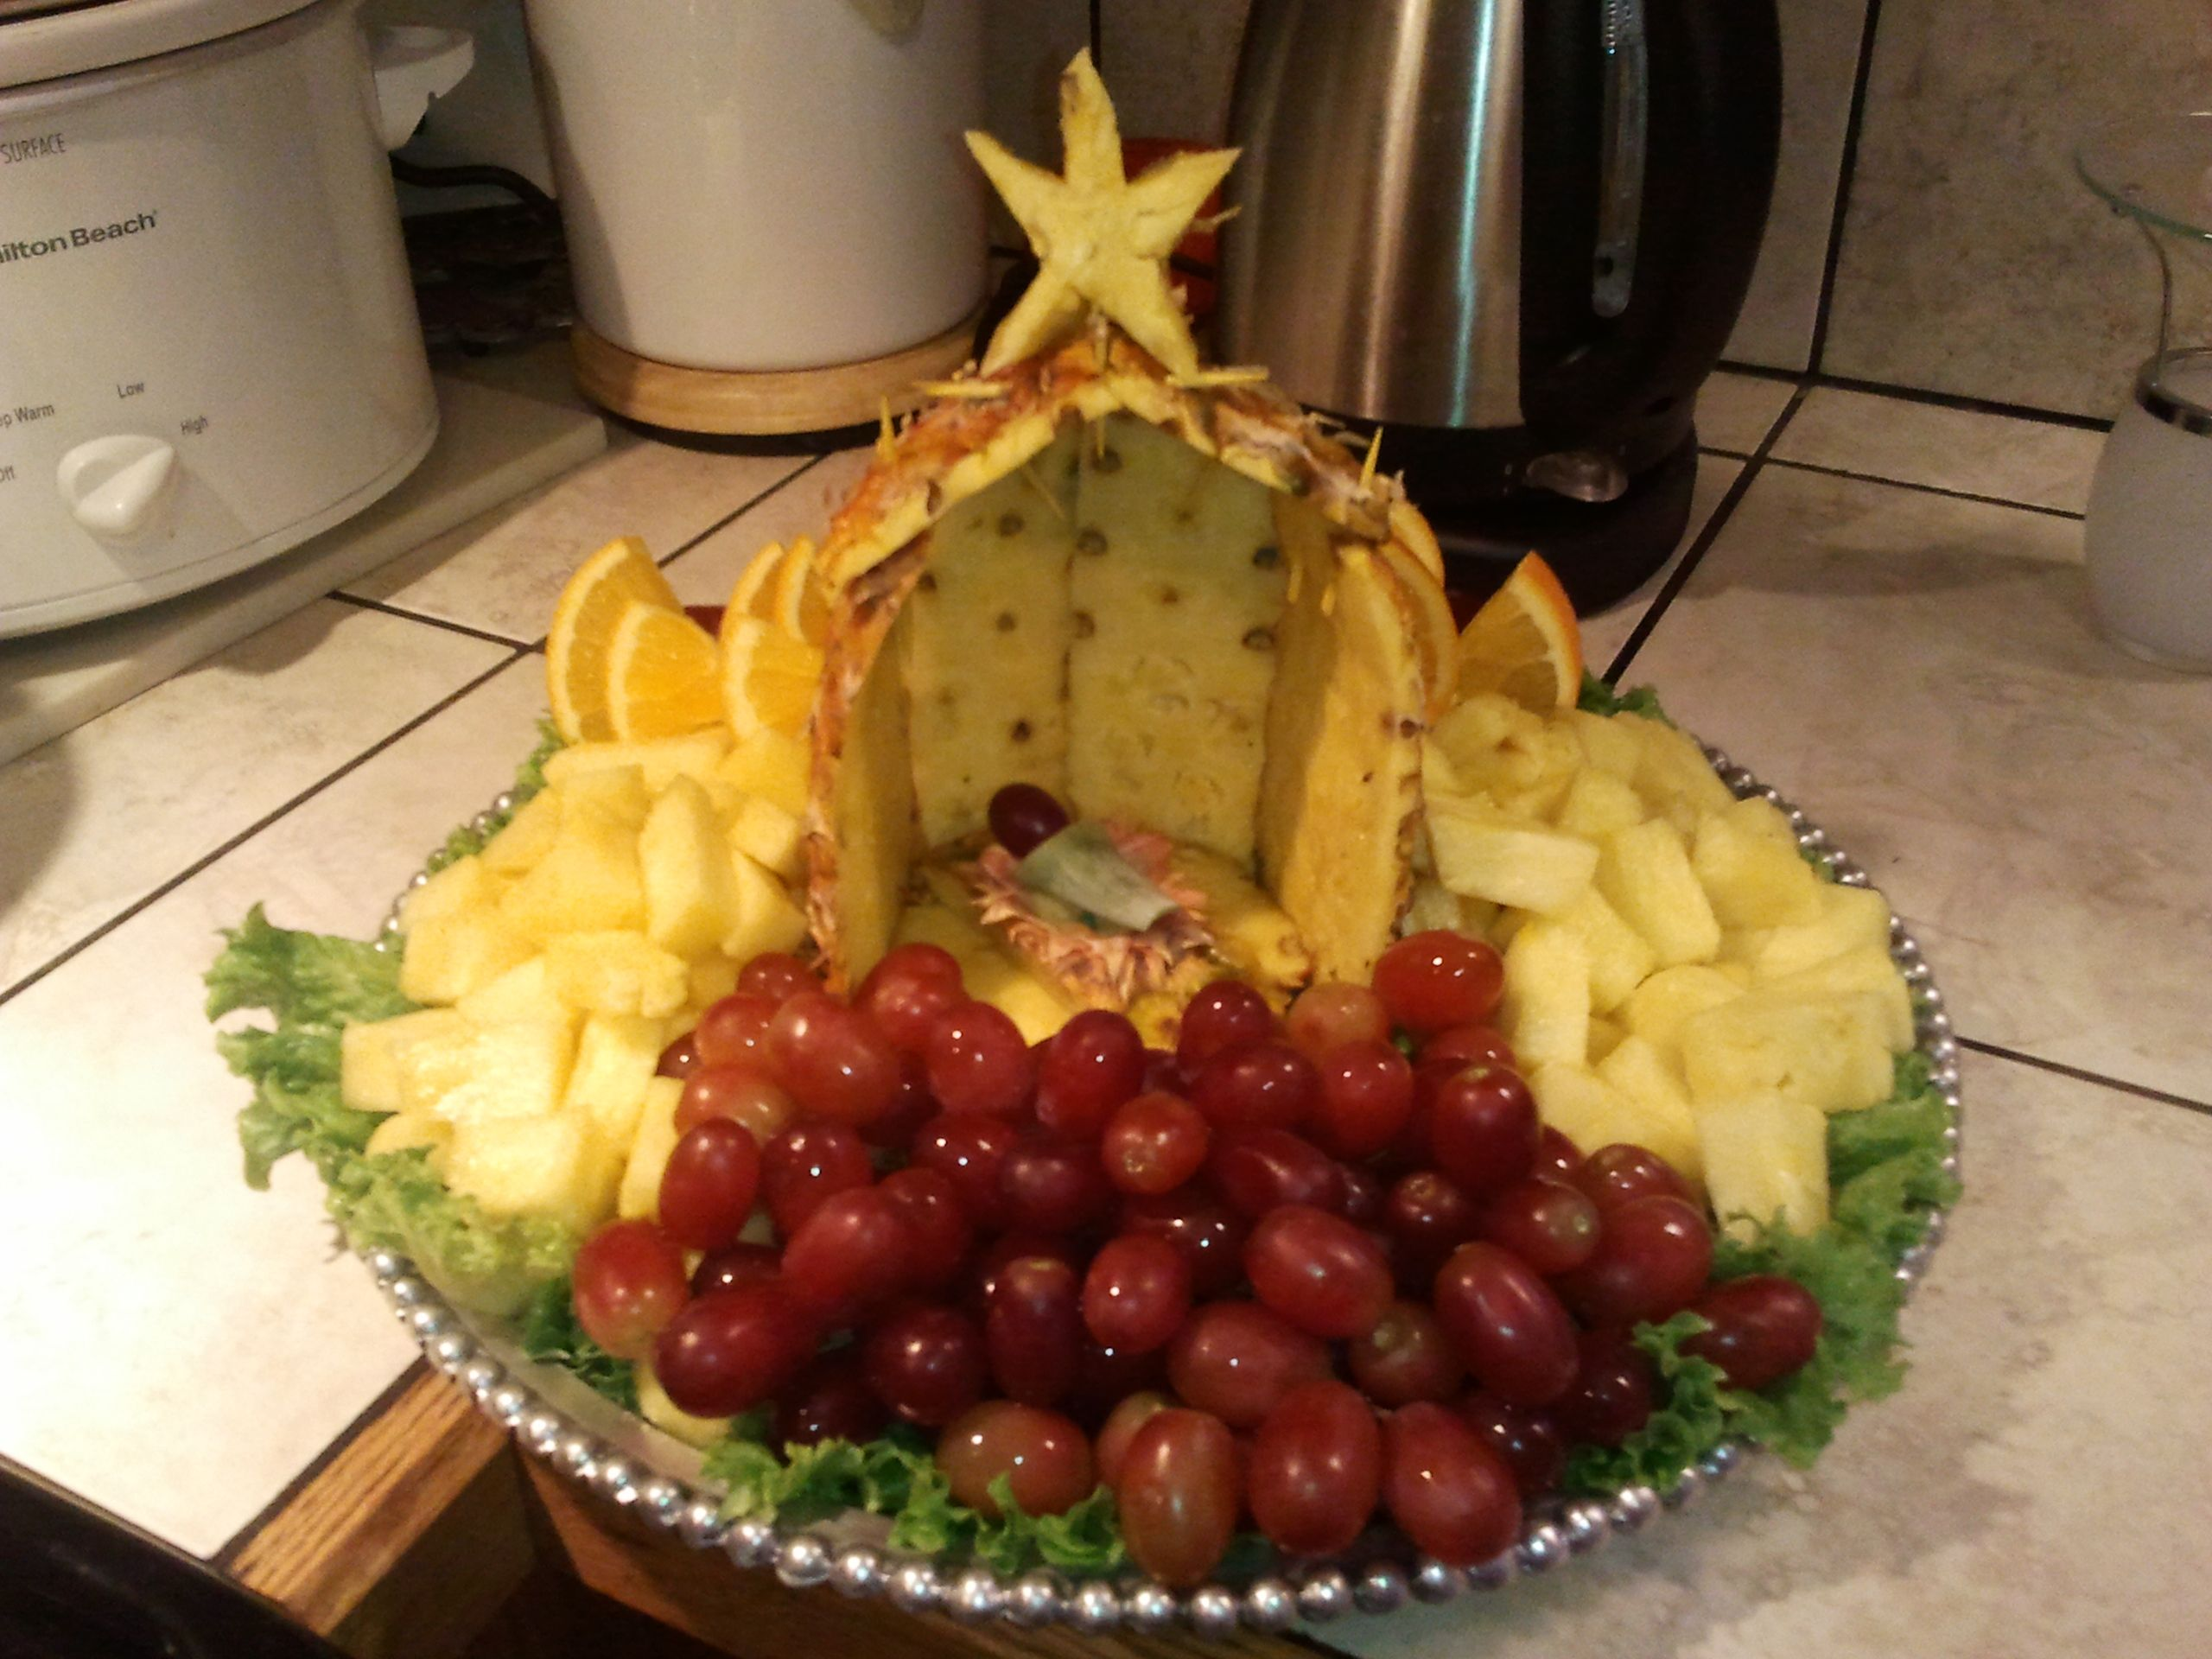 Made Last Christmas With A Pineapple After Removing Stem, The